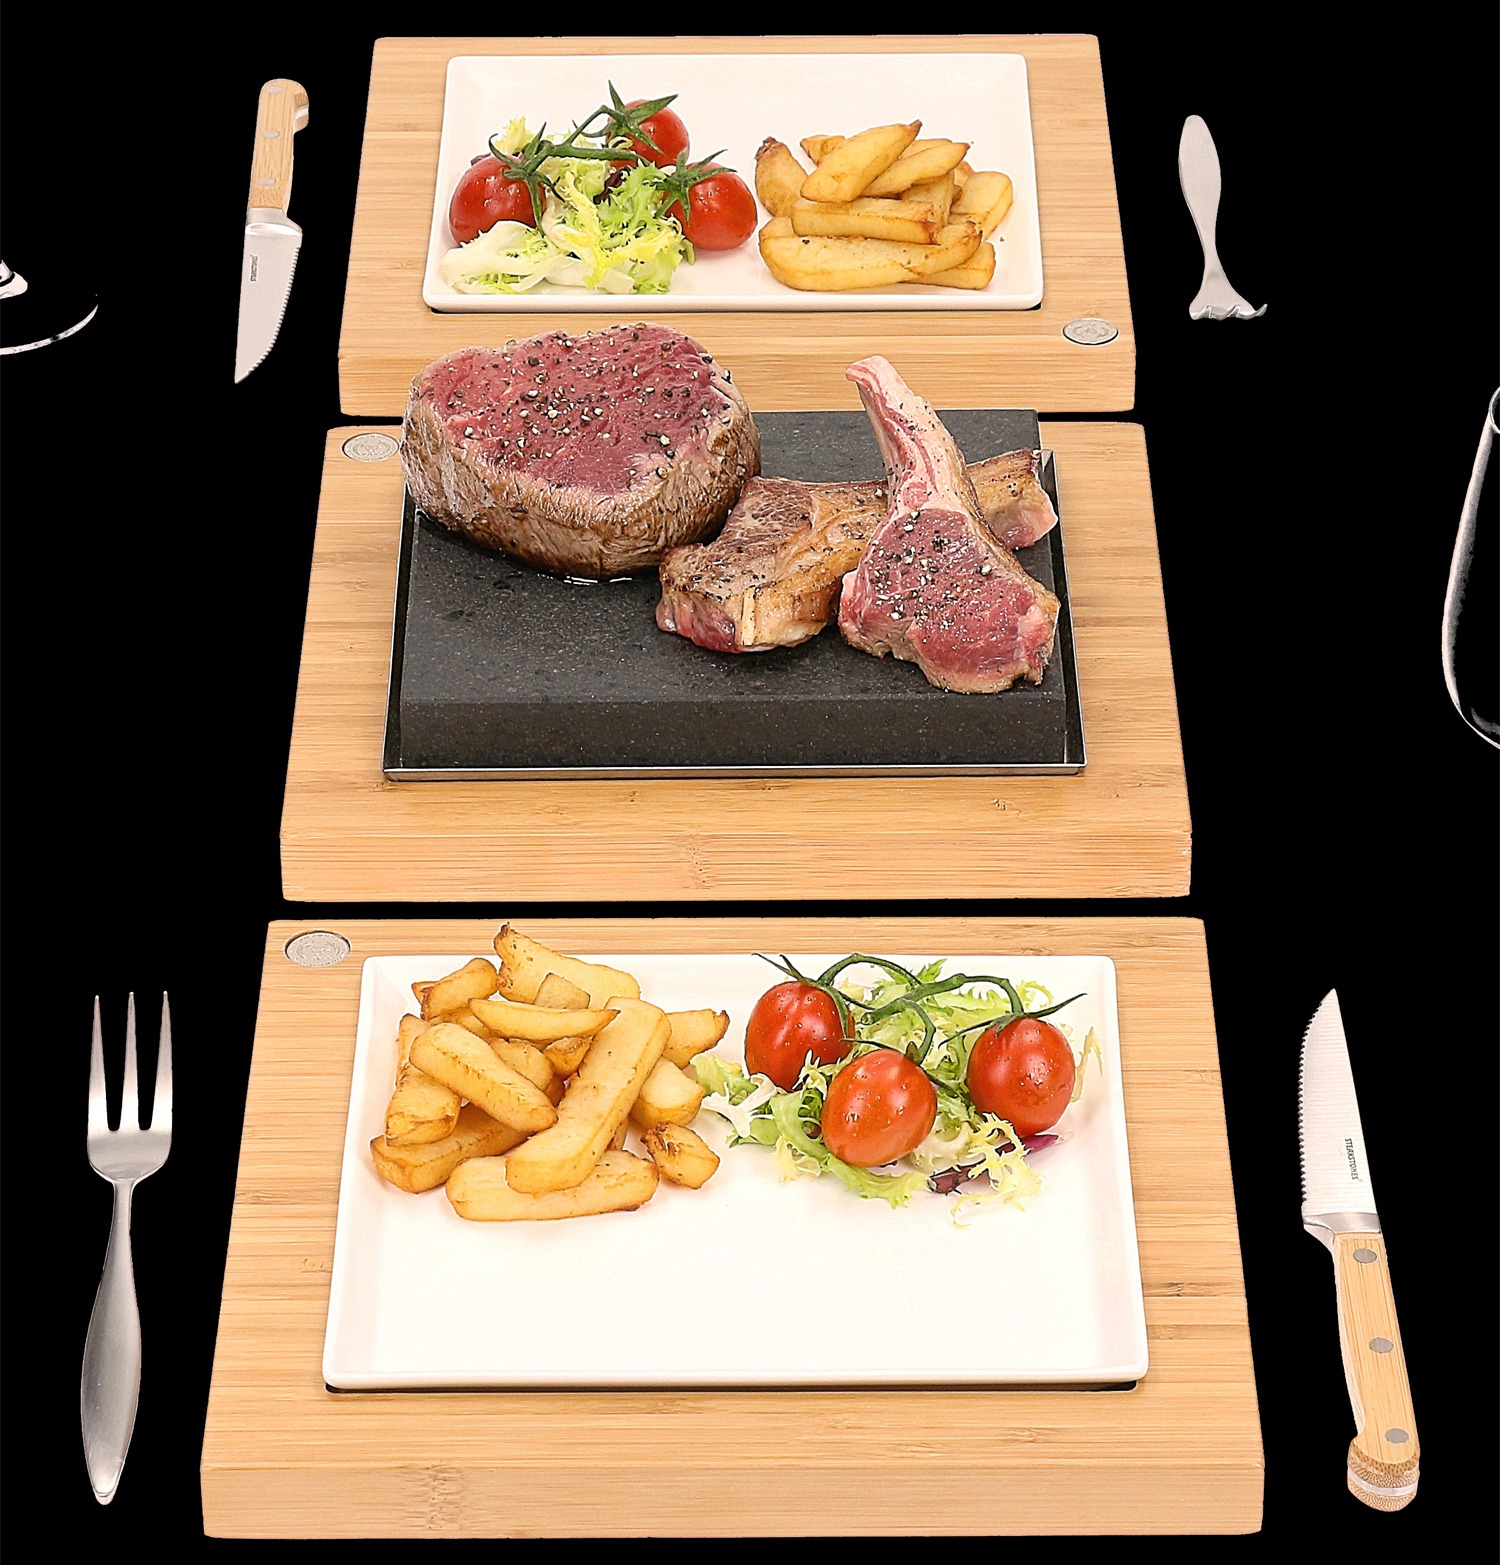 The SteakStones Steak Plate and Serving Sets